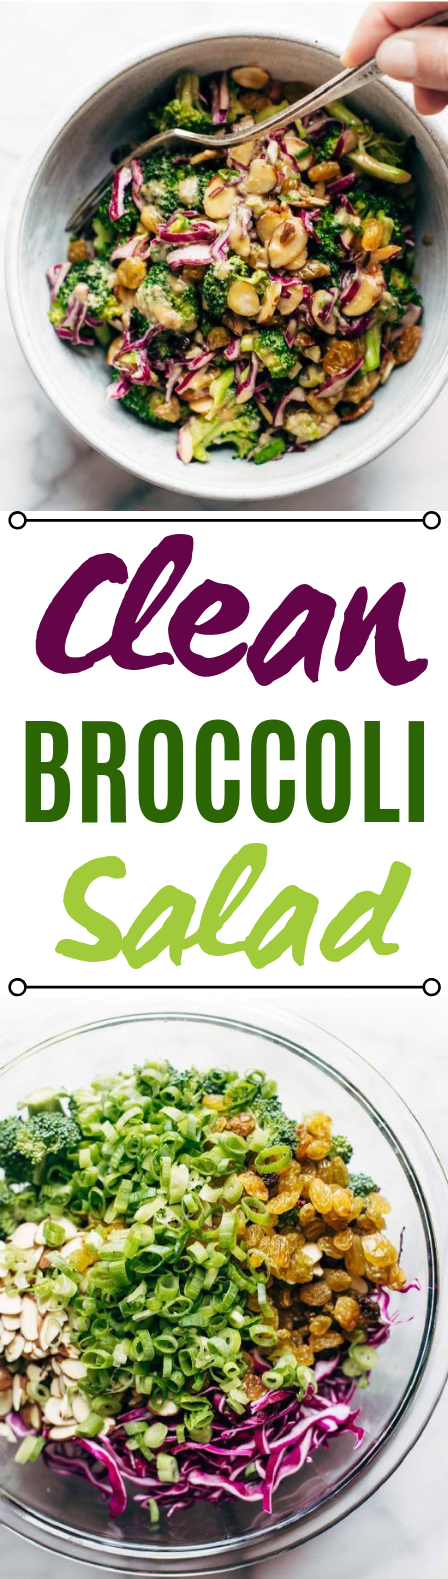 Clean Broccoli Salad with Creamy Almond Dressing #vegetarian #salad